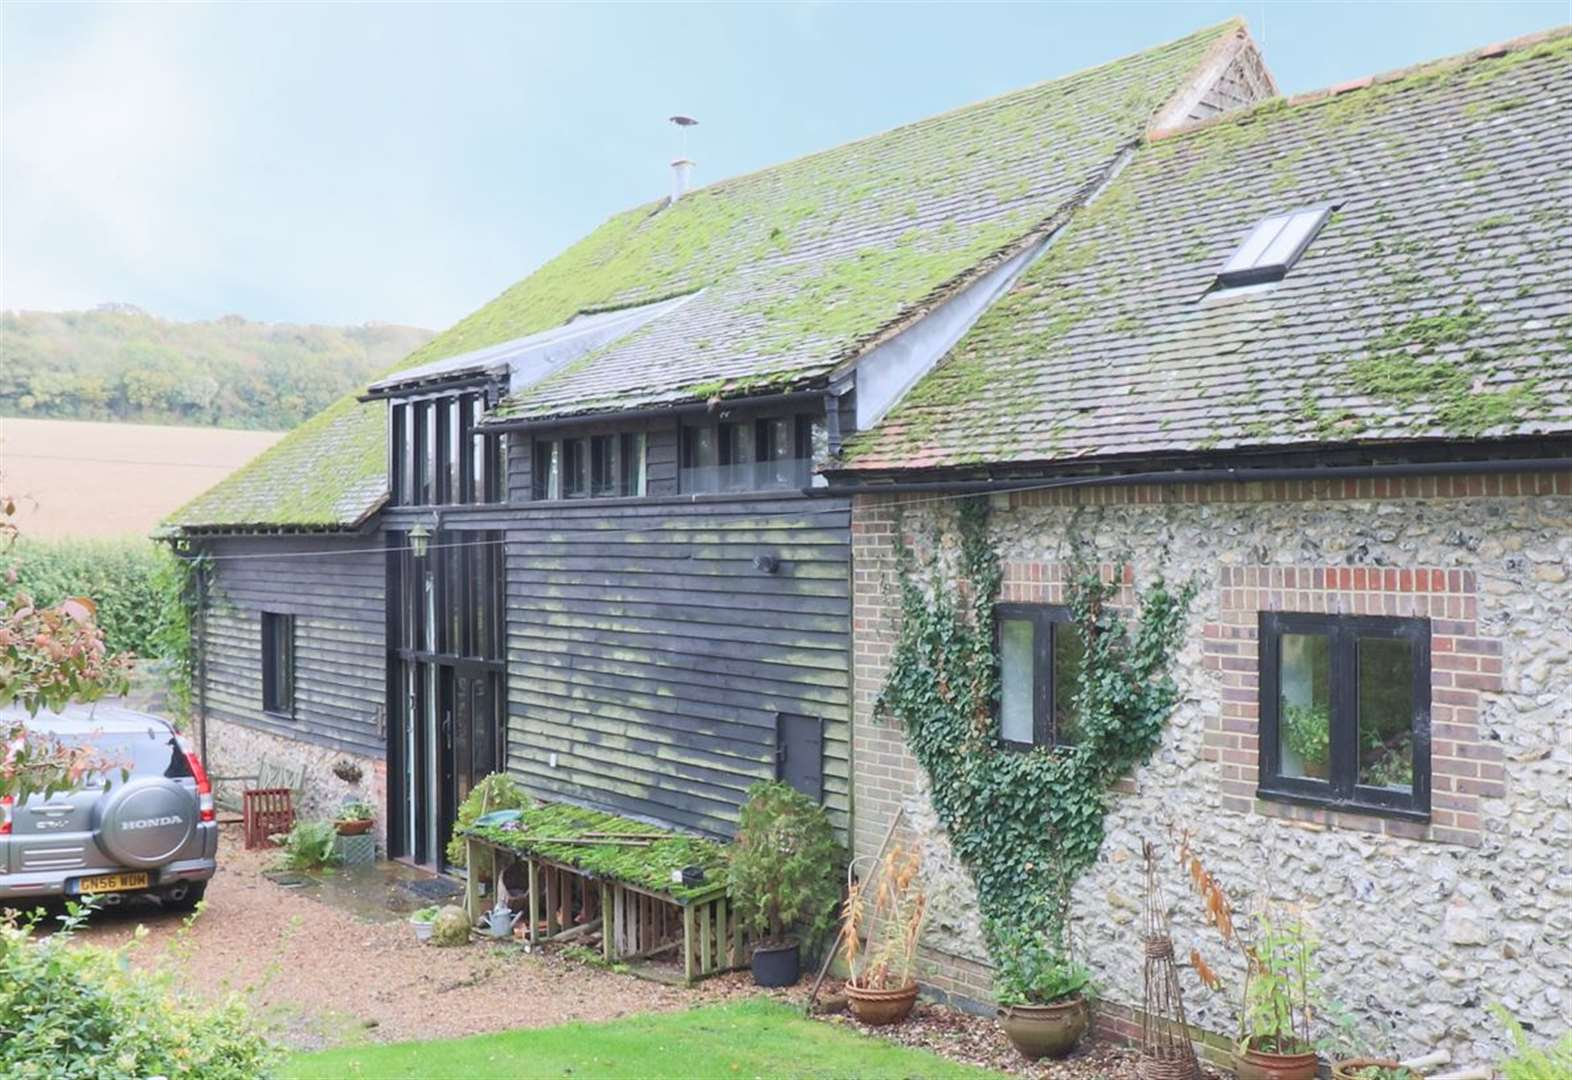 Converted barn could be worth a look